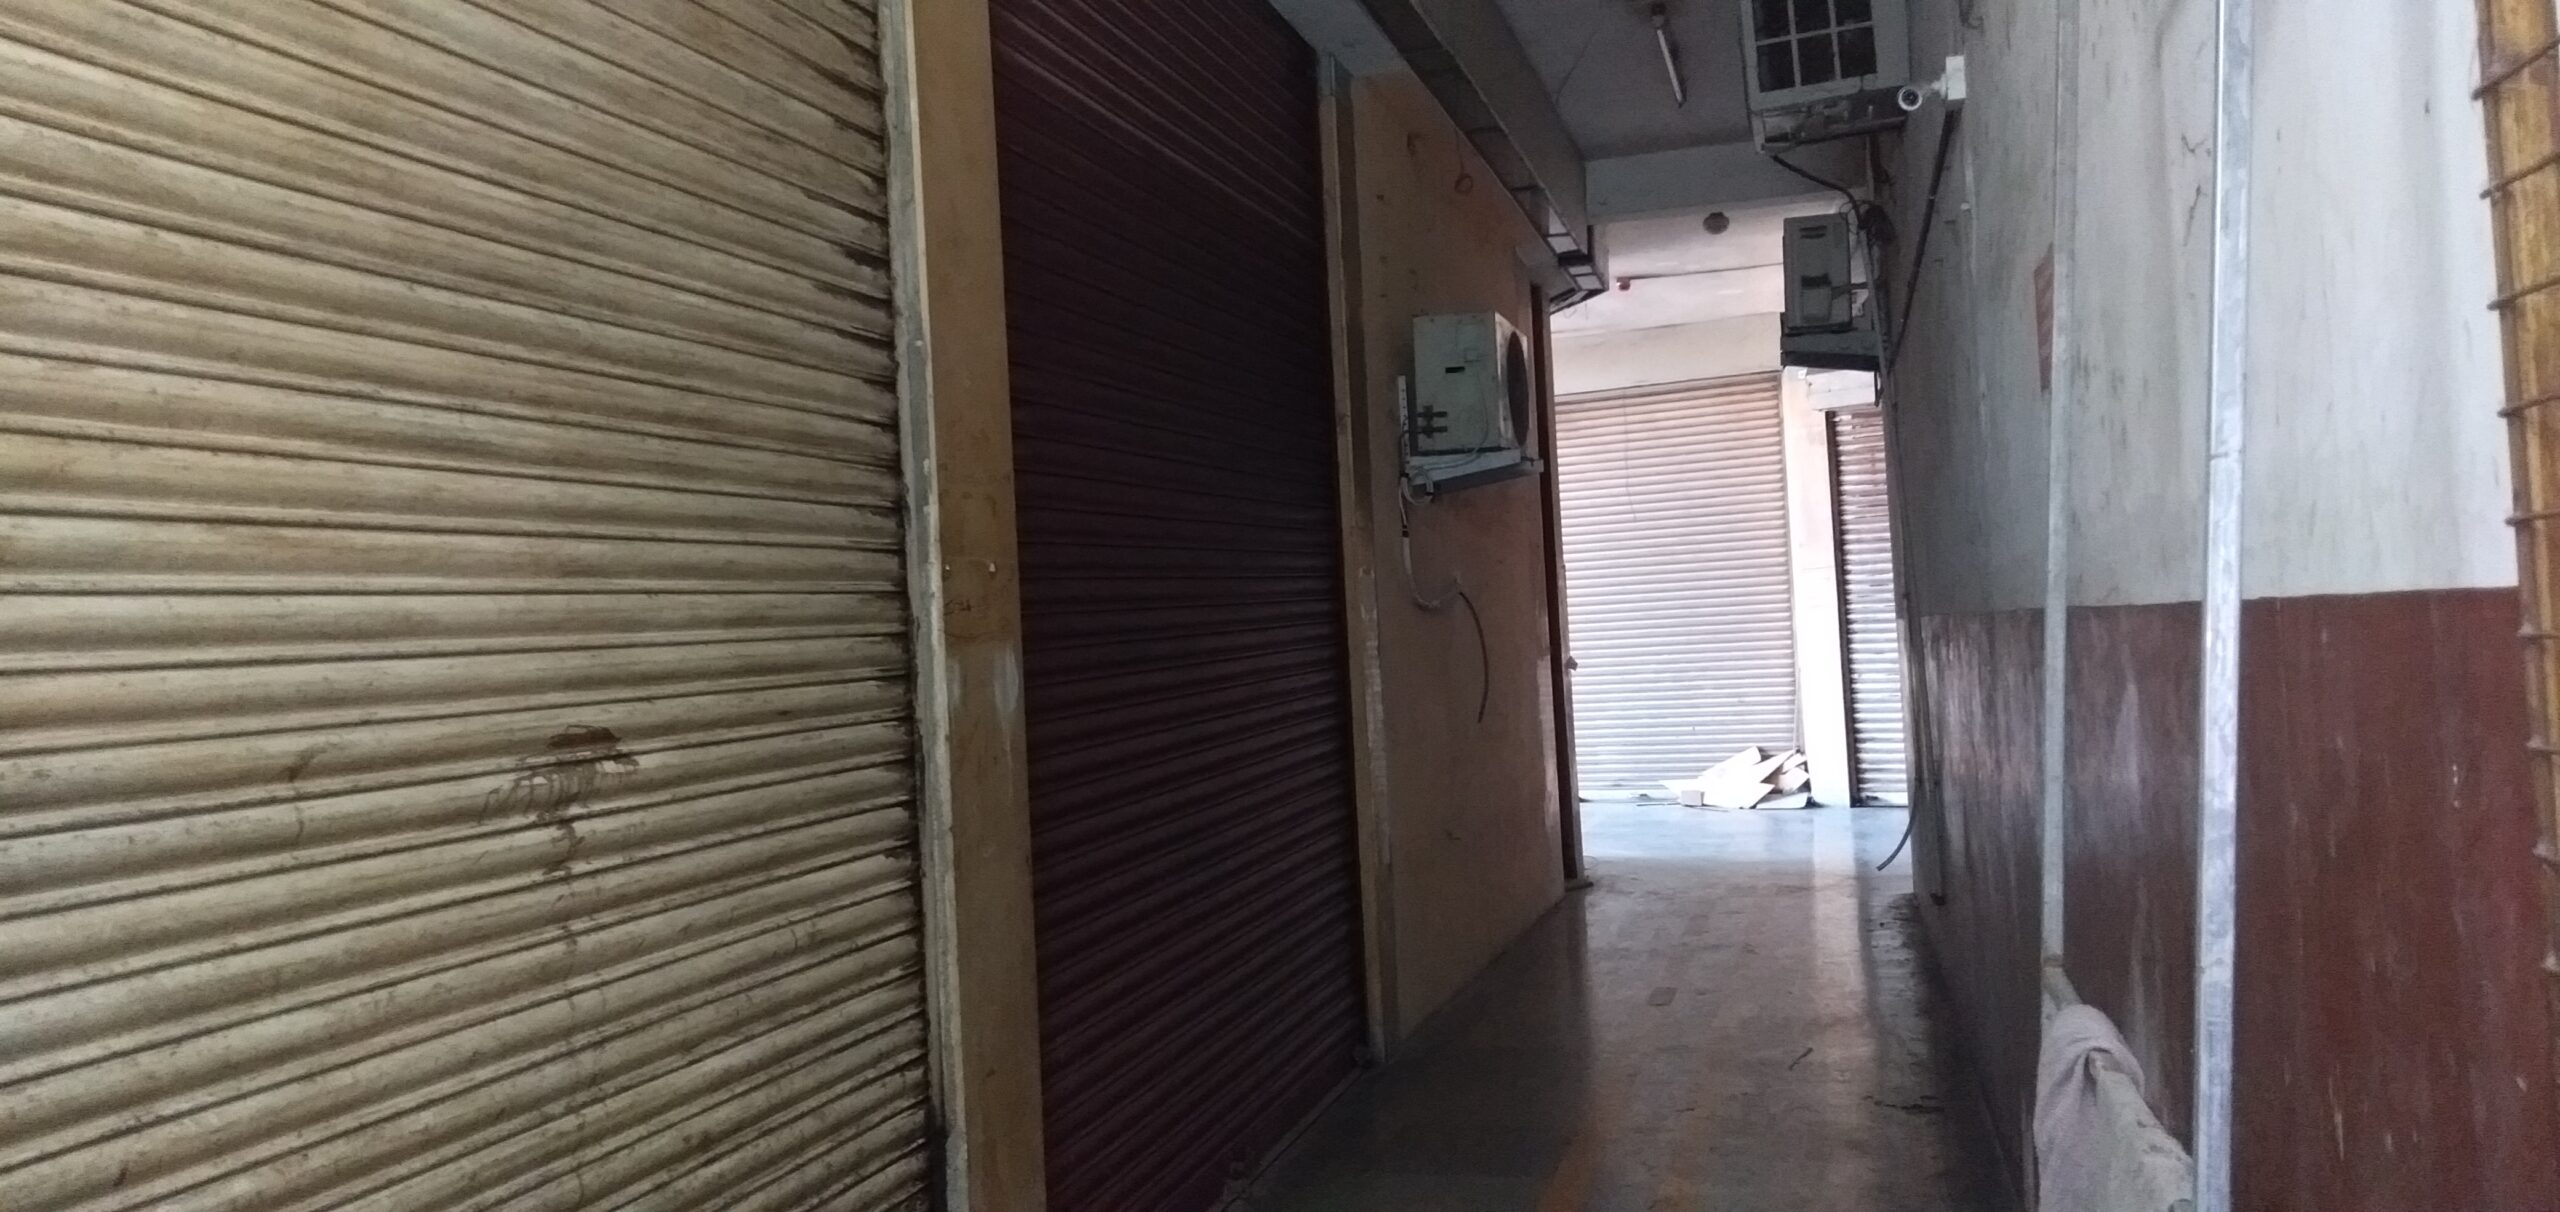 OFFICE SPACE/COMMERCIAL PROPERTY/WAREHOUSE/APARTMENT FOR RENT